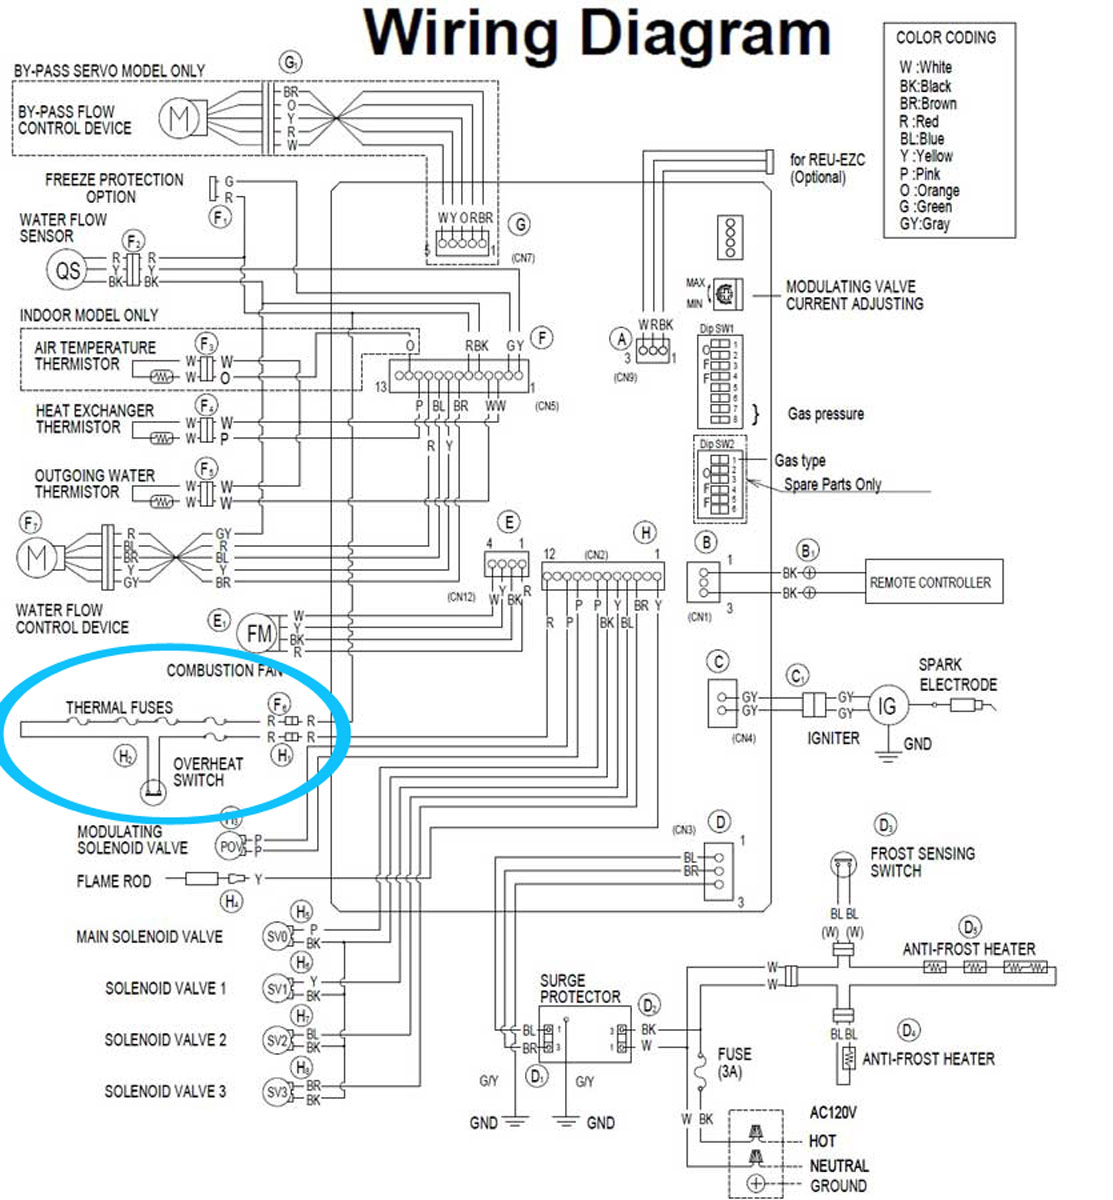 tankless water heater wiring diagram Collection-Check the electric troubleshoot from 2008 pdf Tankless gas water heater 1-o